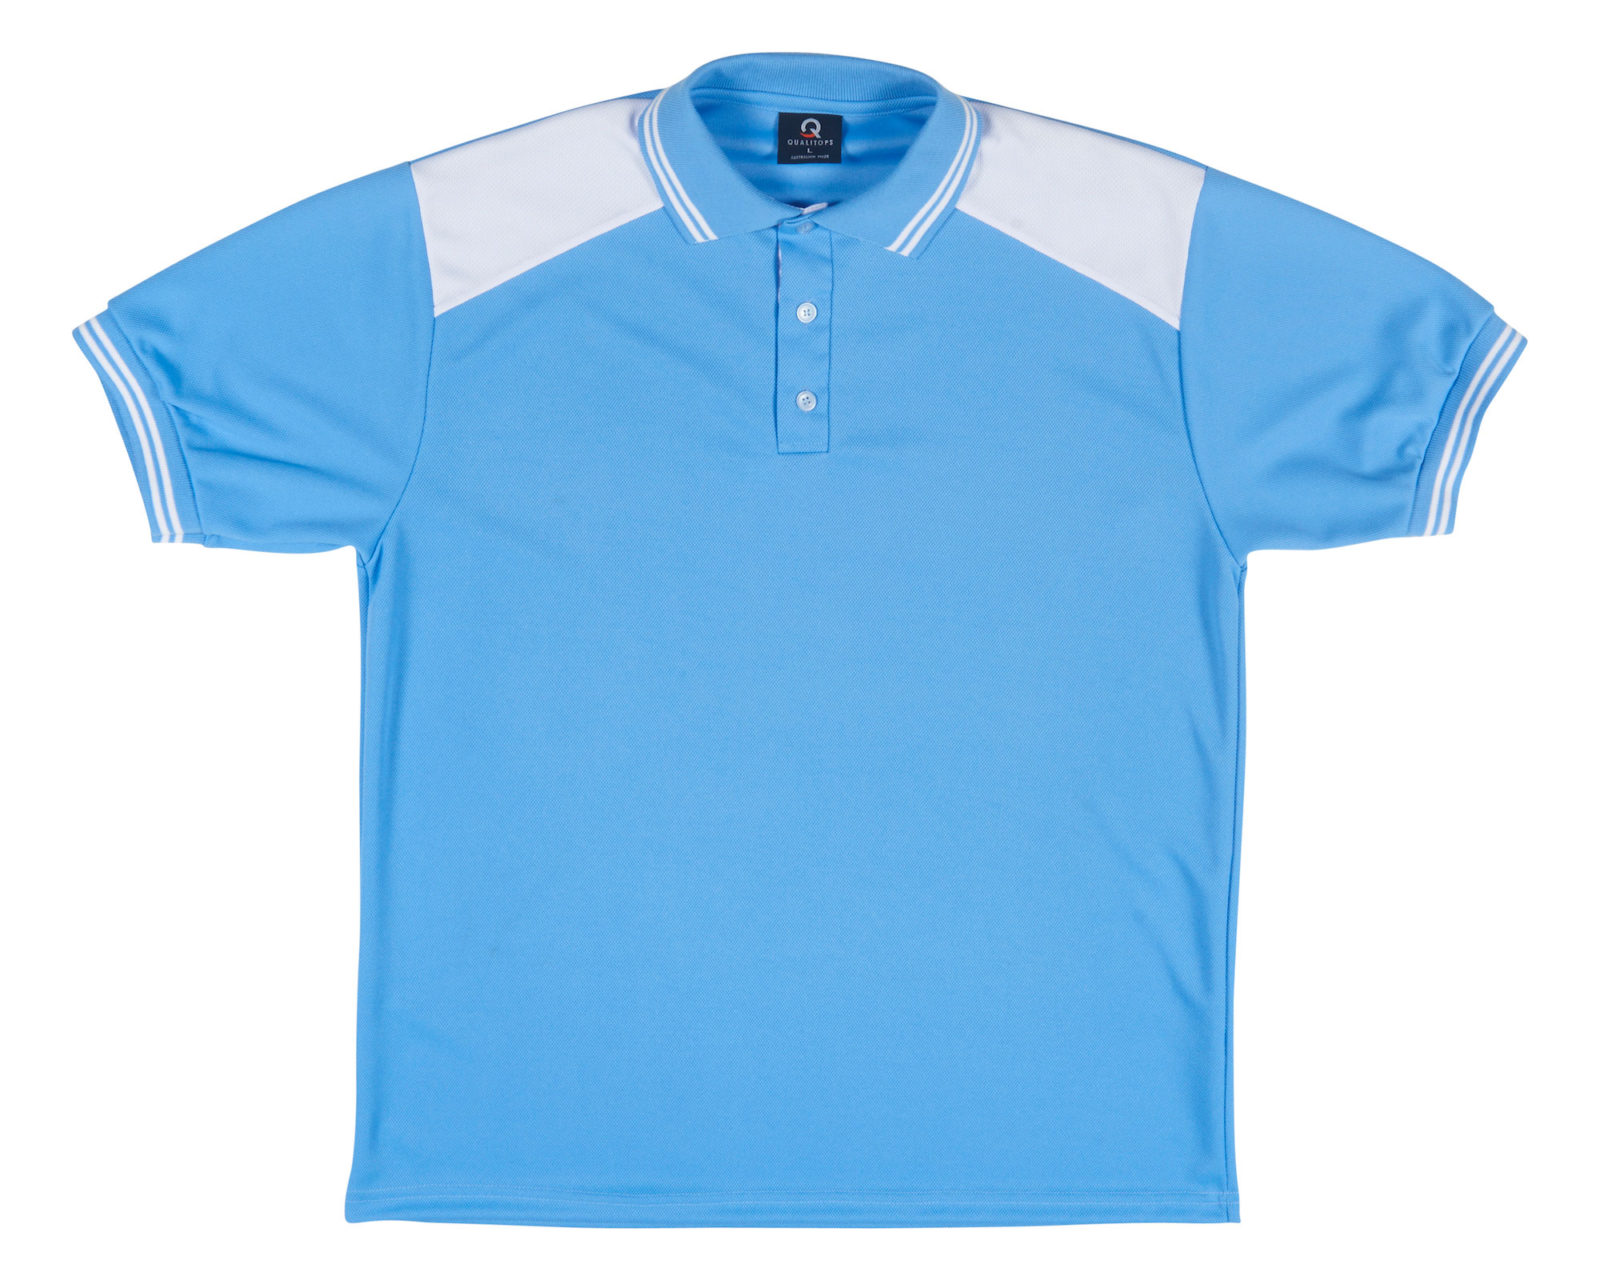 Polo Shirts Wholesale Pakistan - Prism Contractors & Engineers